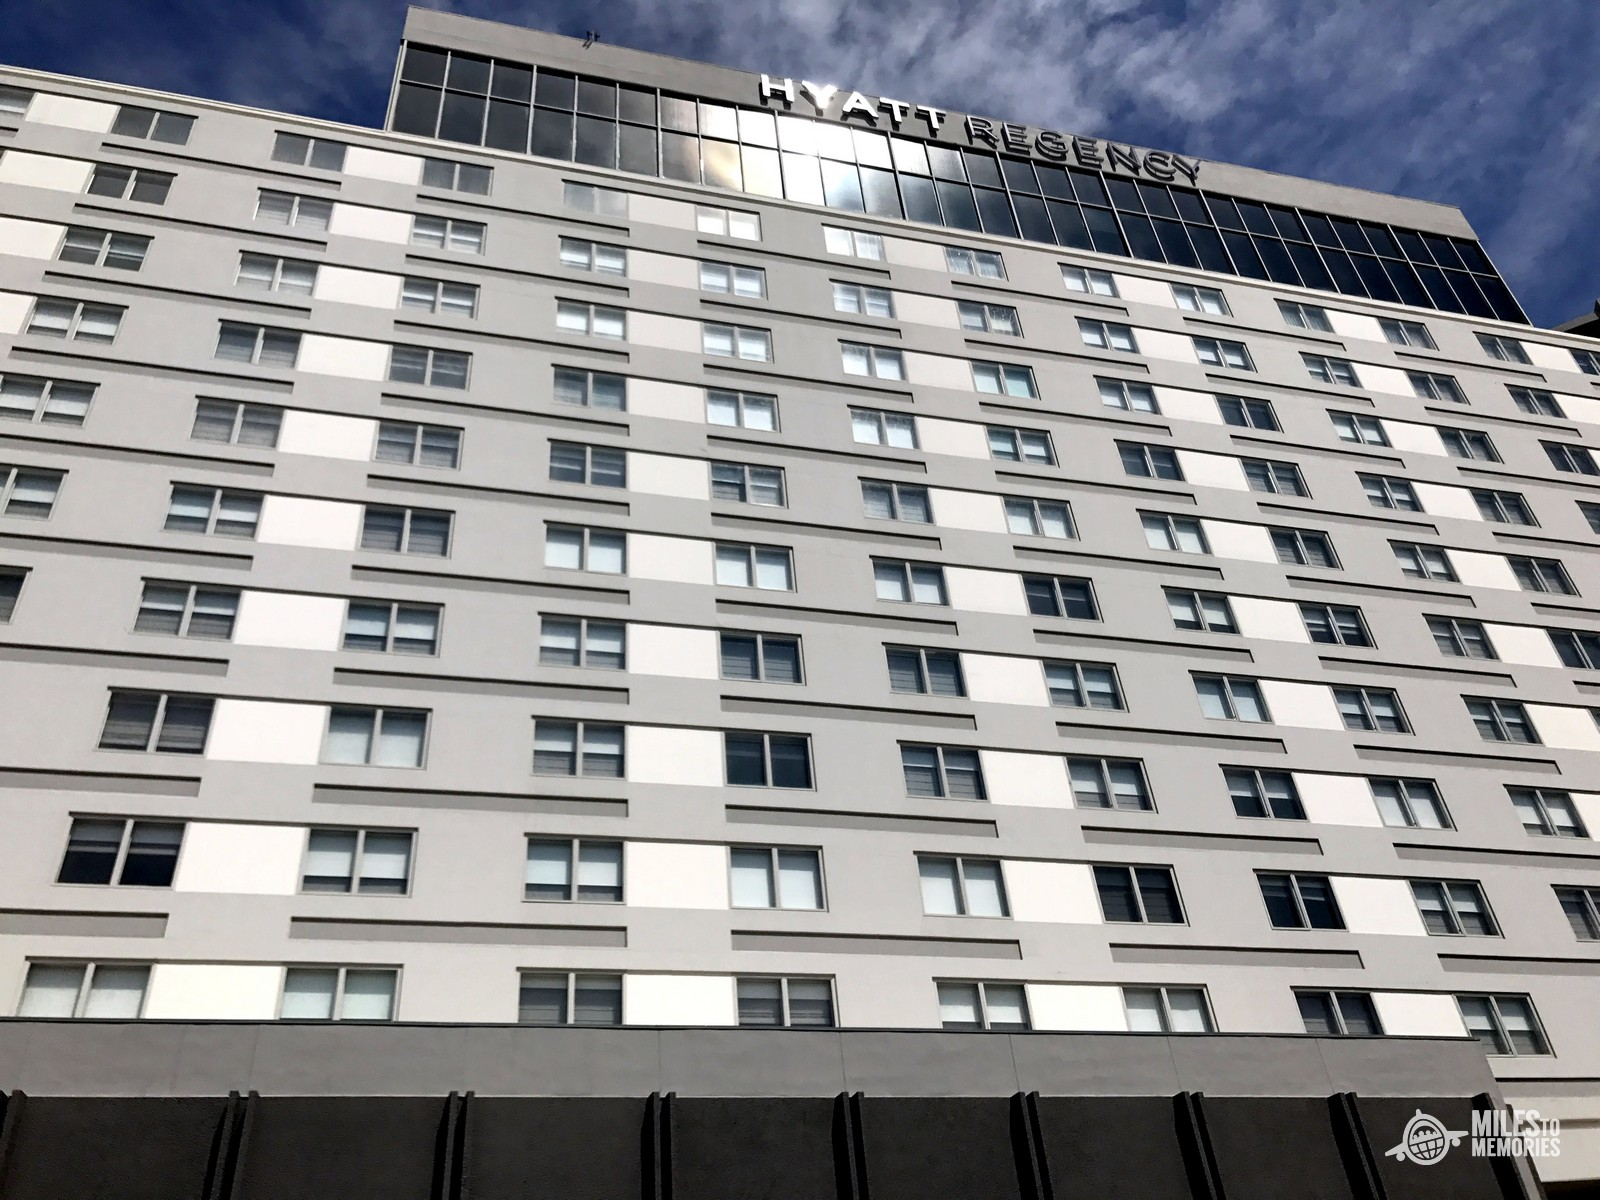 Los Angeles Hotels  Outlet Student Discount  2020